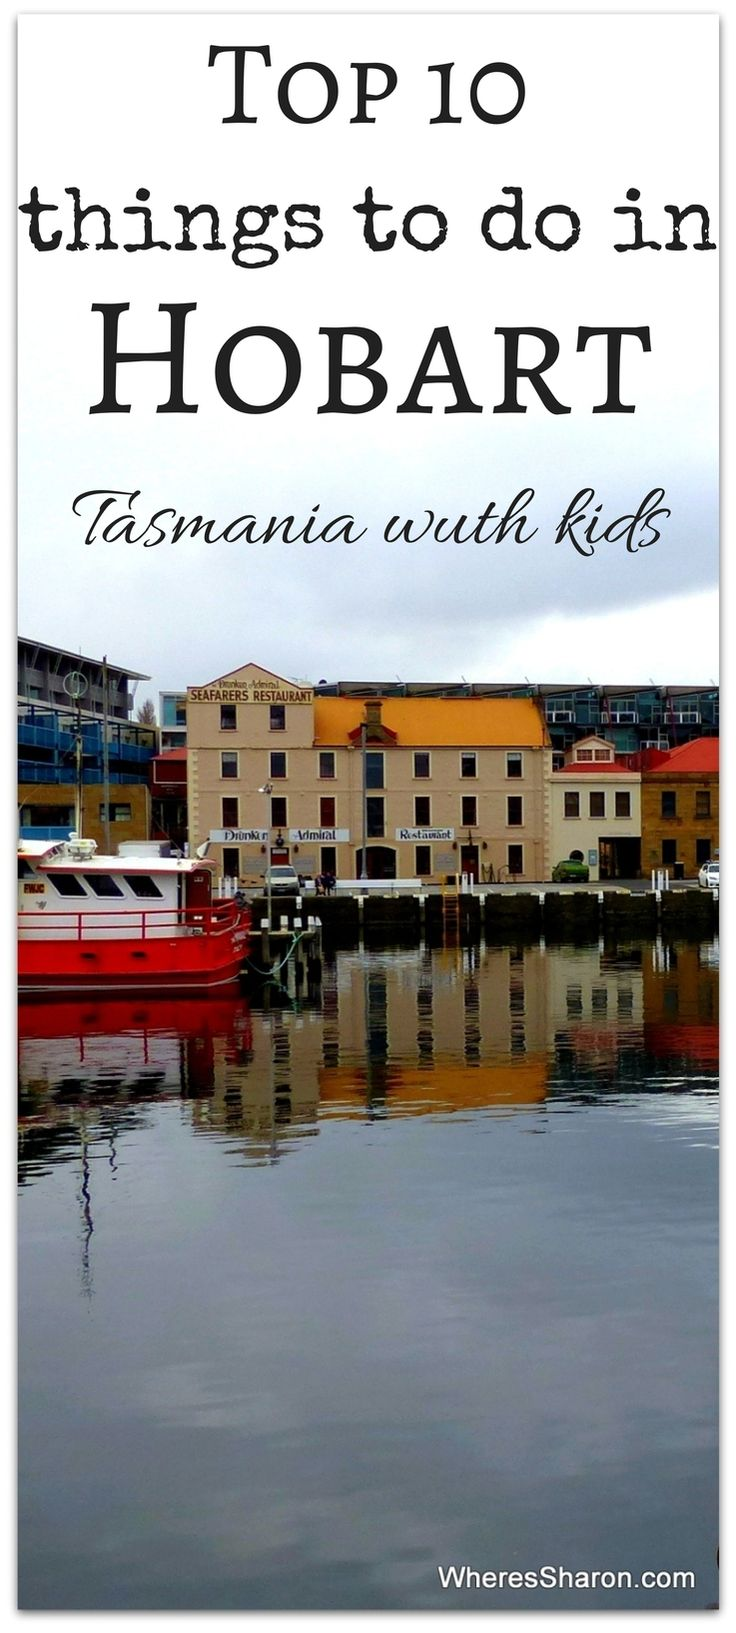 Our top 10 things to do in Hobart, Tasmania with kids http://www.wheressharon.com/australian-travels/things-to-do-in-tasmania/things-to-do-in-hobart-with-kids/ #familytravel #Tasmania #Hobart